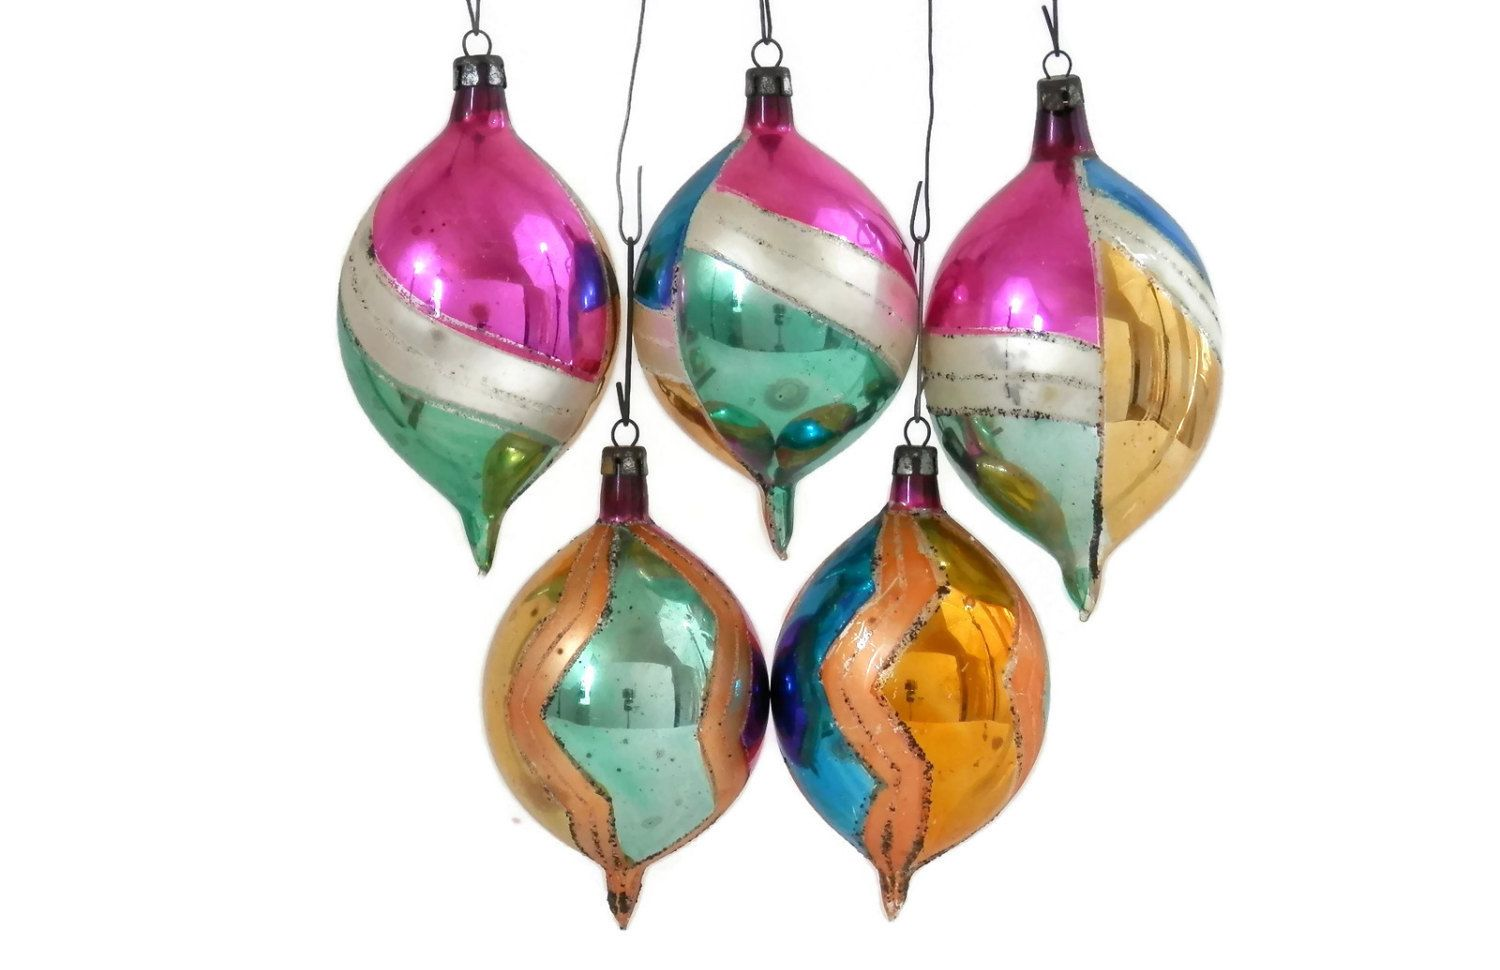 Set 5 Polish Christmas Ornaments Mercury Glass Teardrop Shaped Etsy Mercury Glass Christmas Ornaments Christmas Ornaments Antique Christmas Ornaments